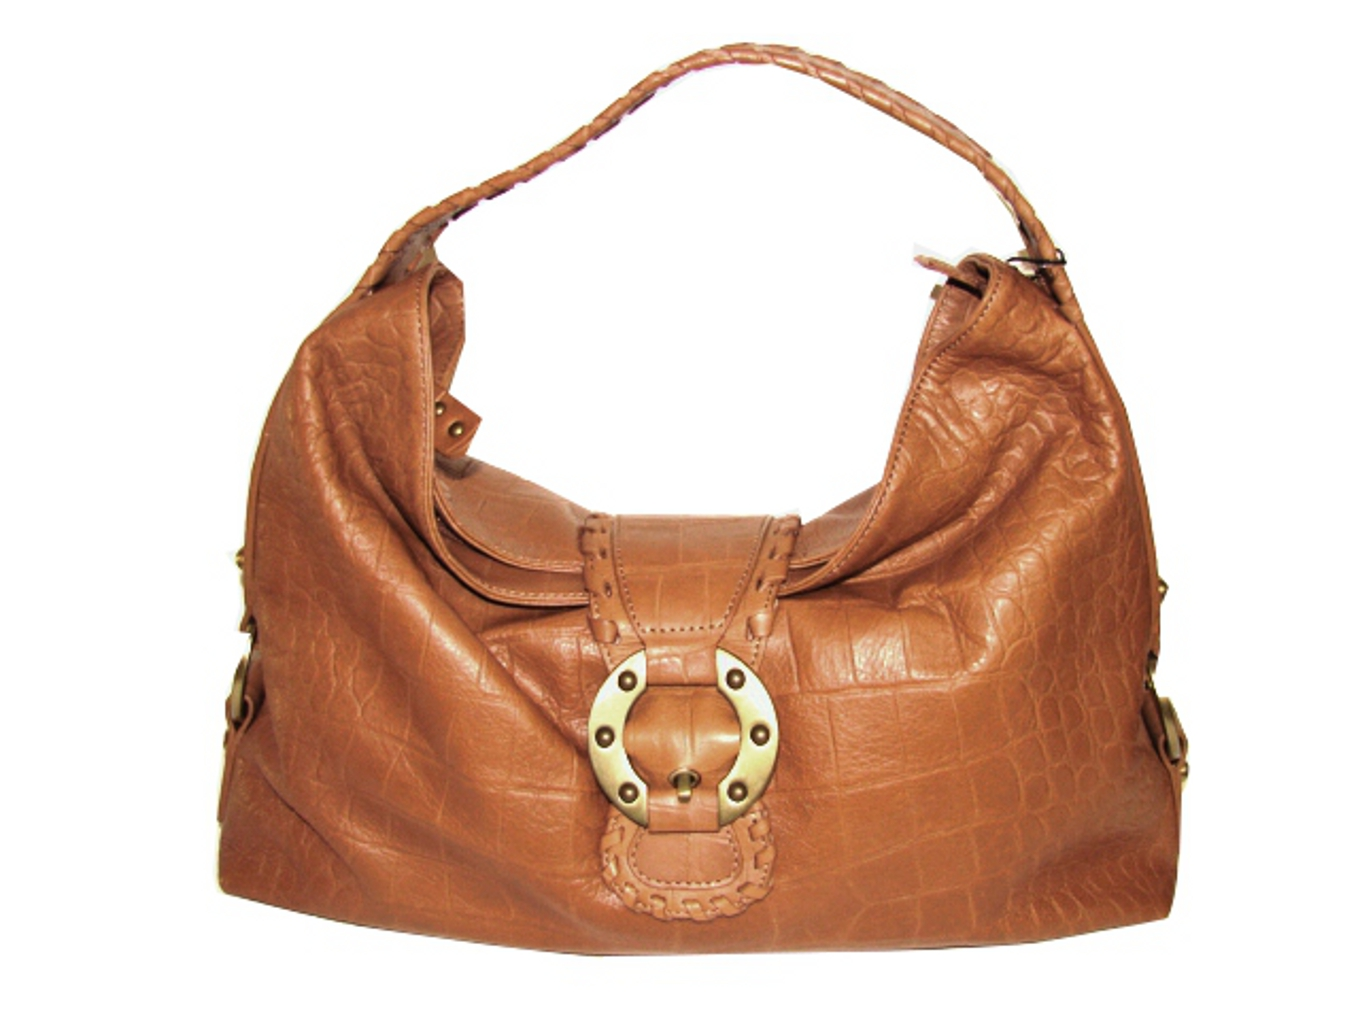 Desmo-Italian Designer Handbag in Crocodile Embossed Camel Color Leather!